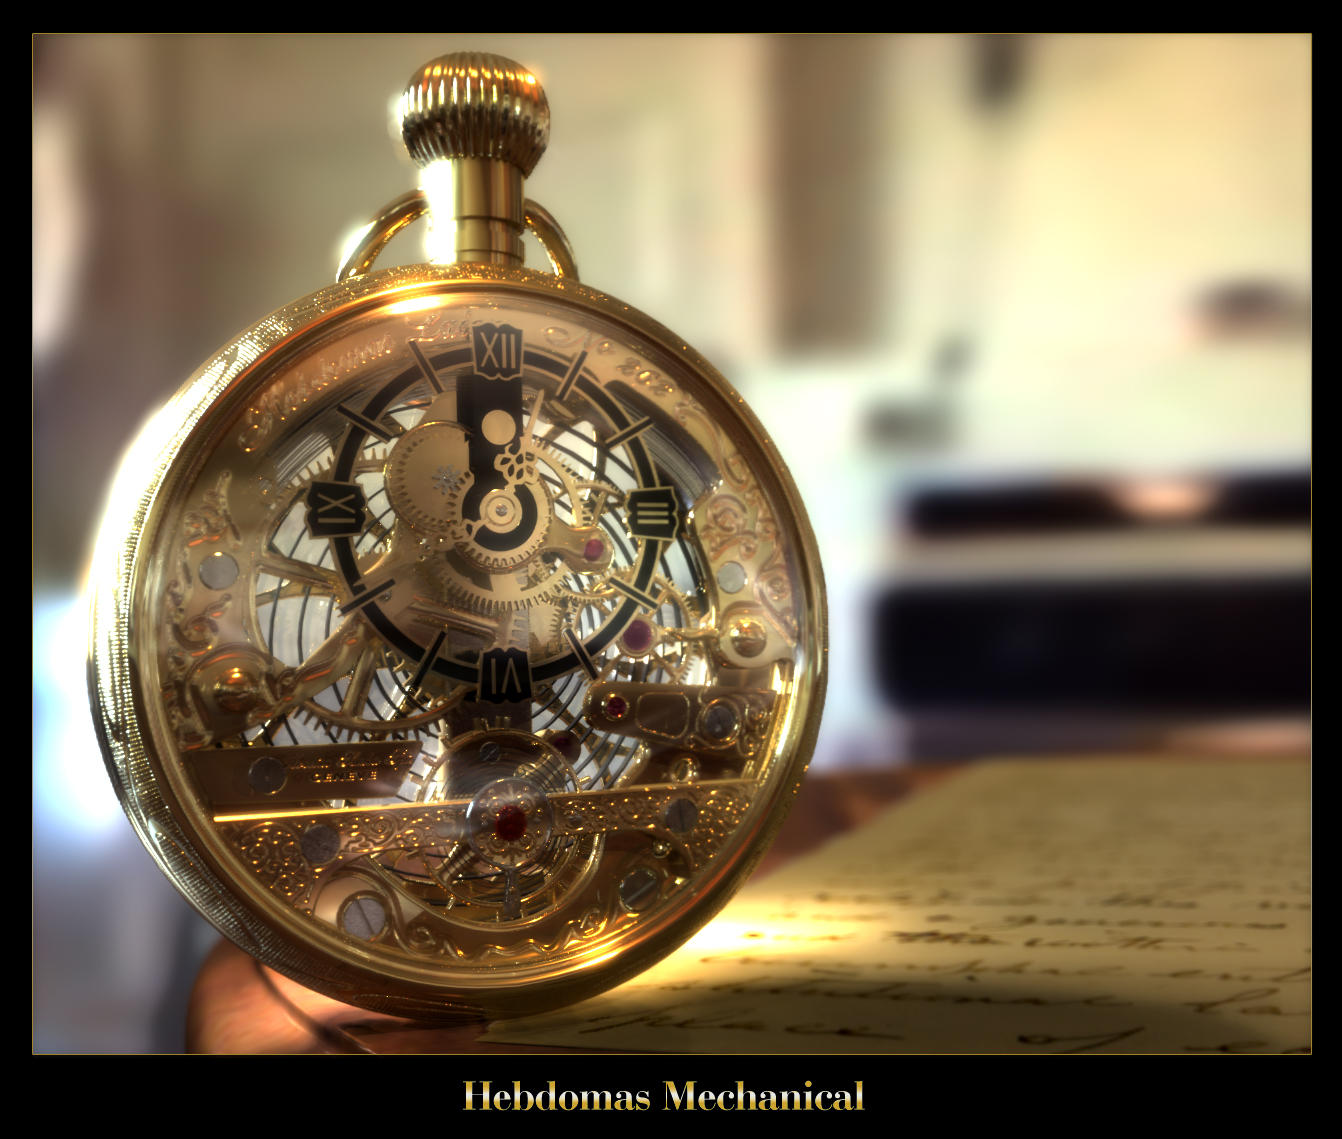 Hebdomas Mechanical by vi0